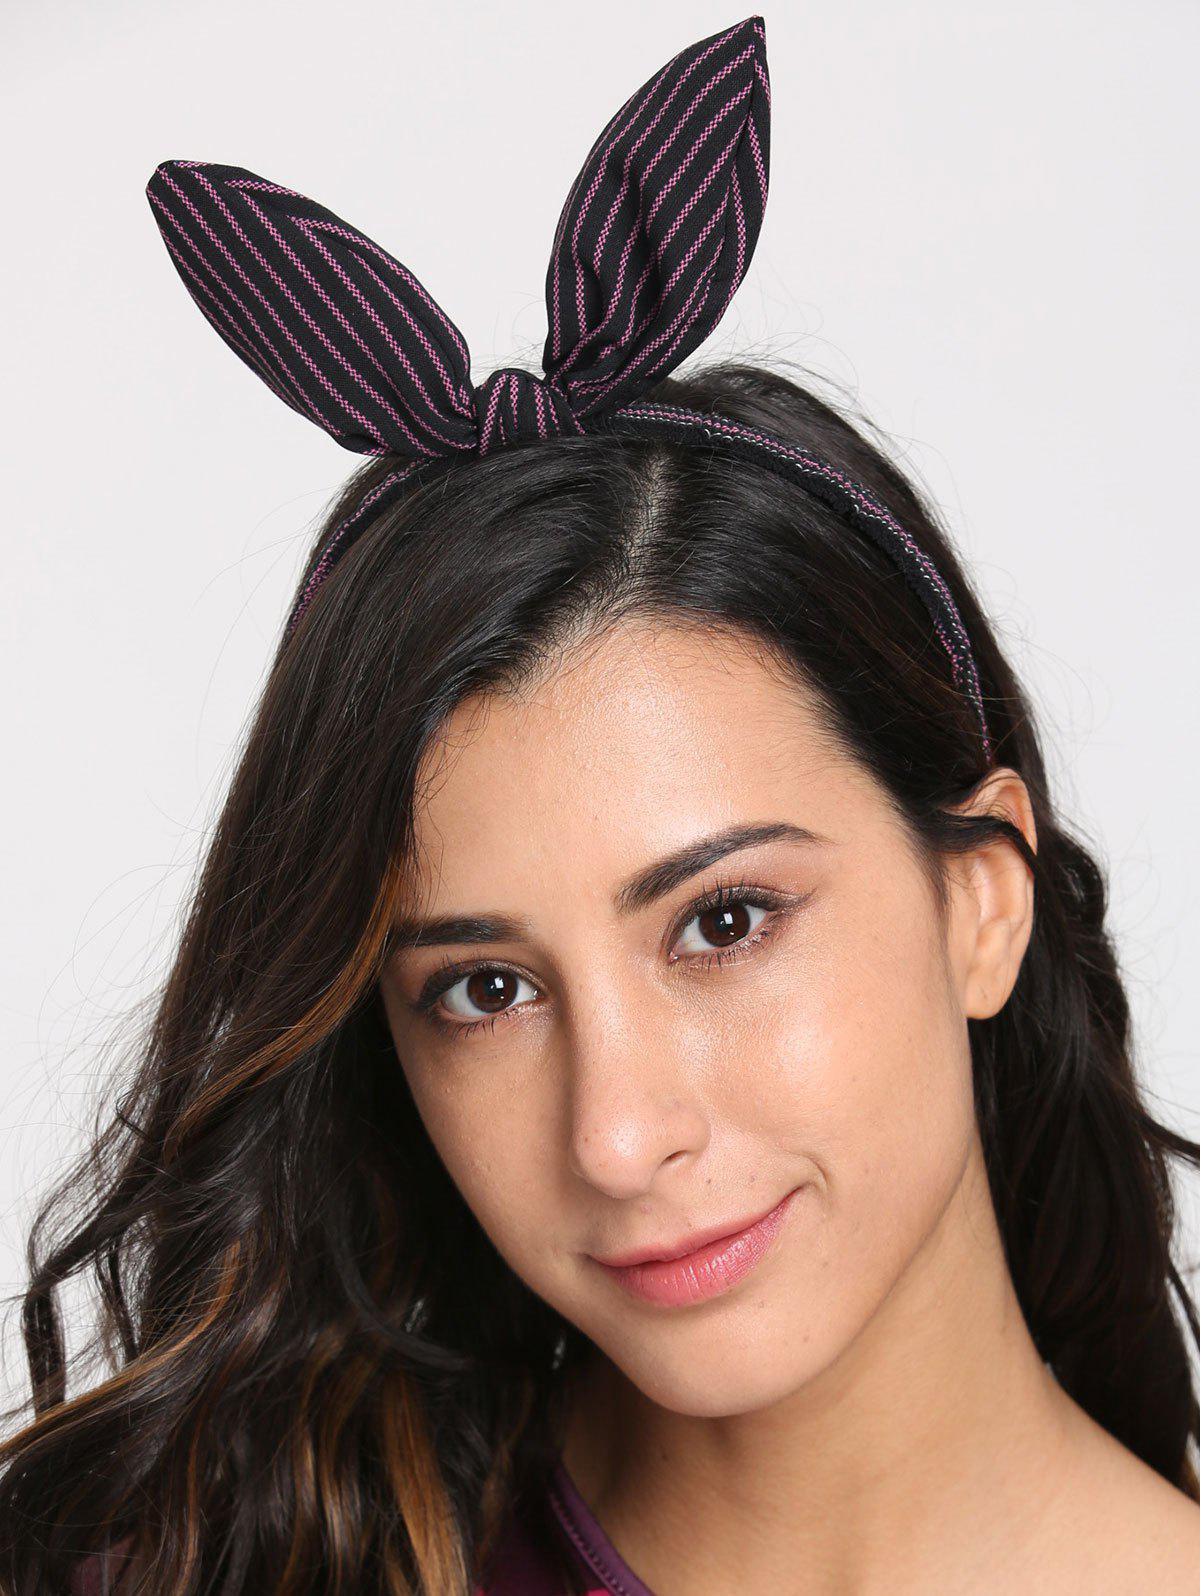 Cute Striped Rabbit Ears Hairband